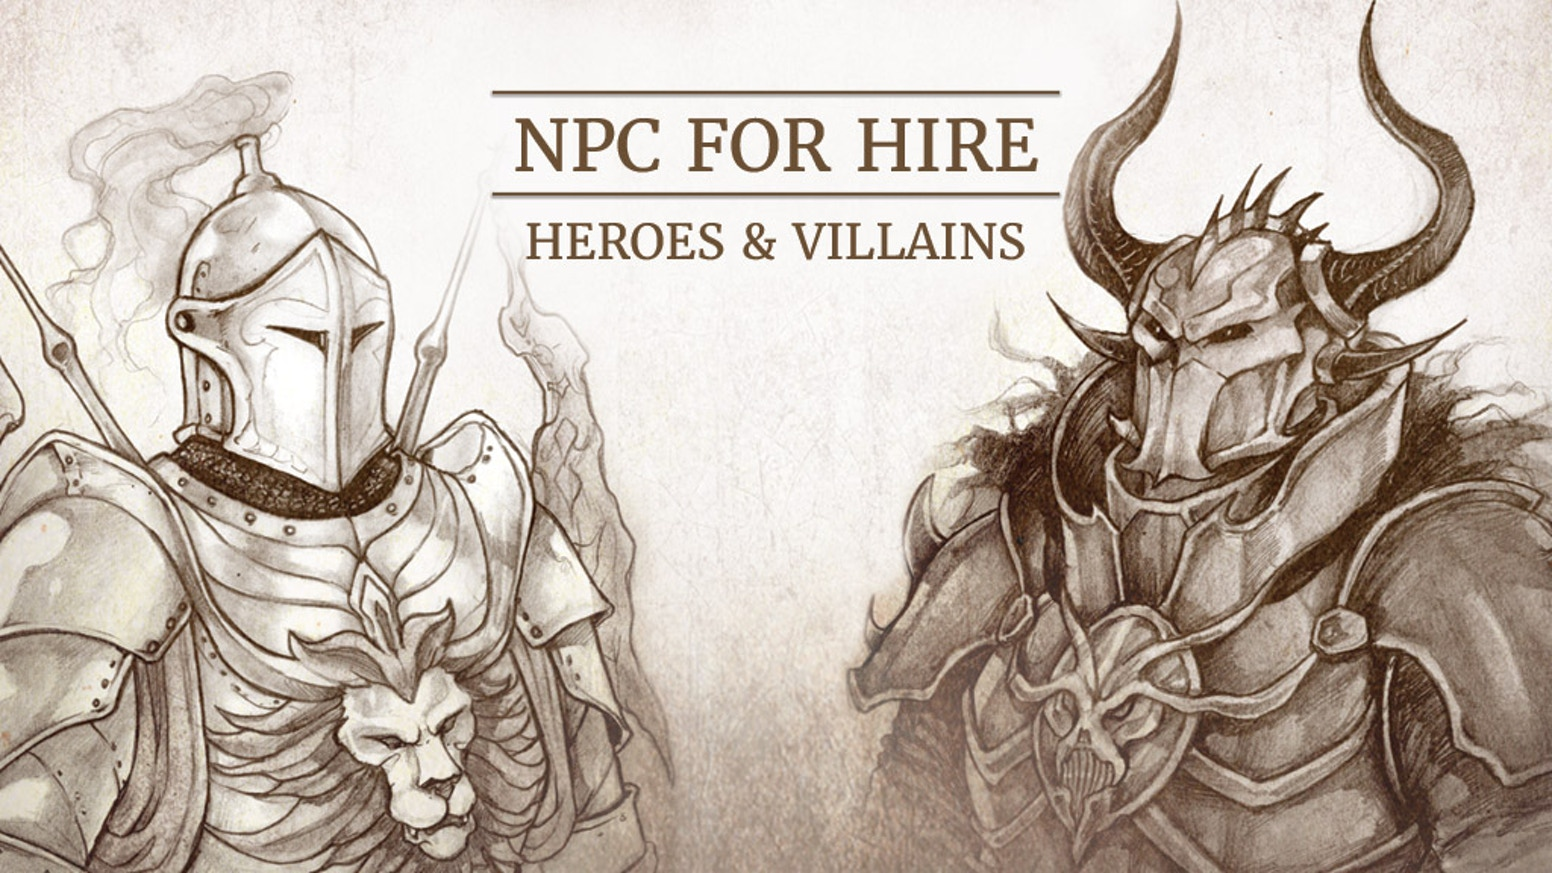 The masterfully illustrated tabletop RPG aid is back to bring you majestic heroes and epic villains.